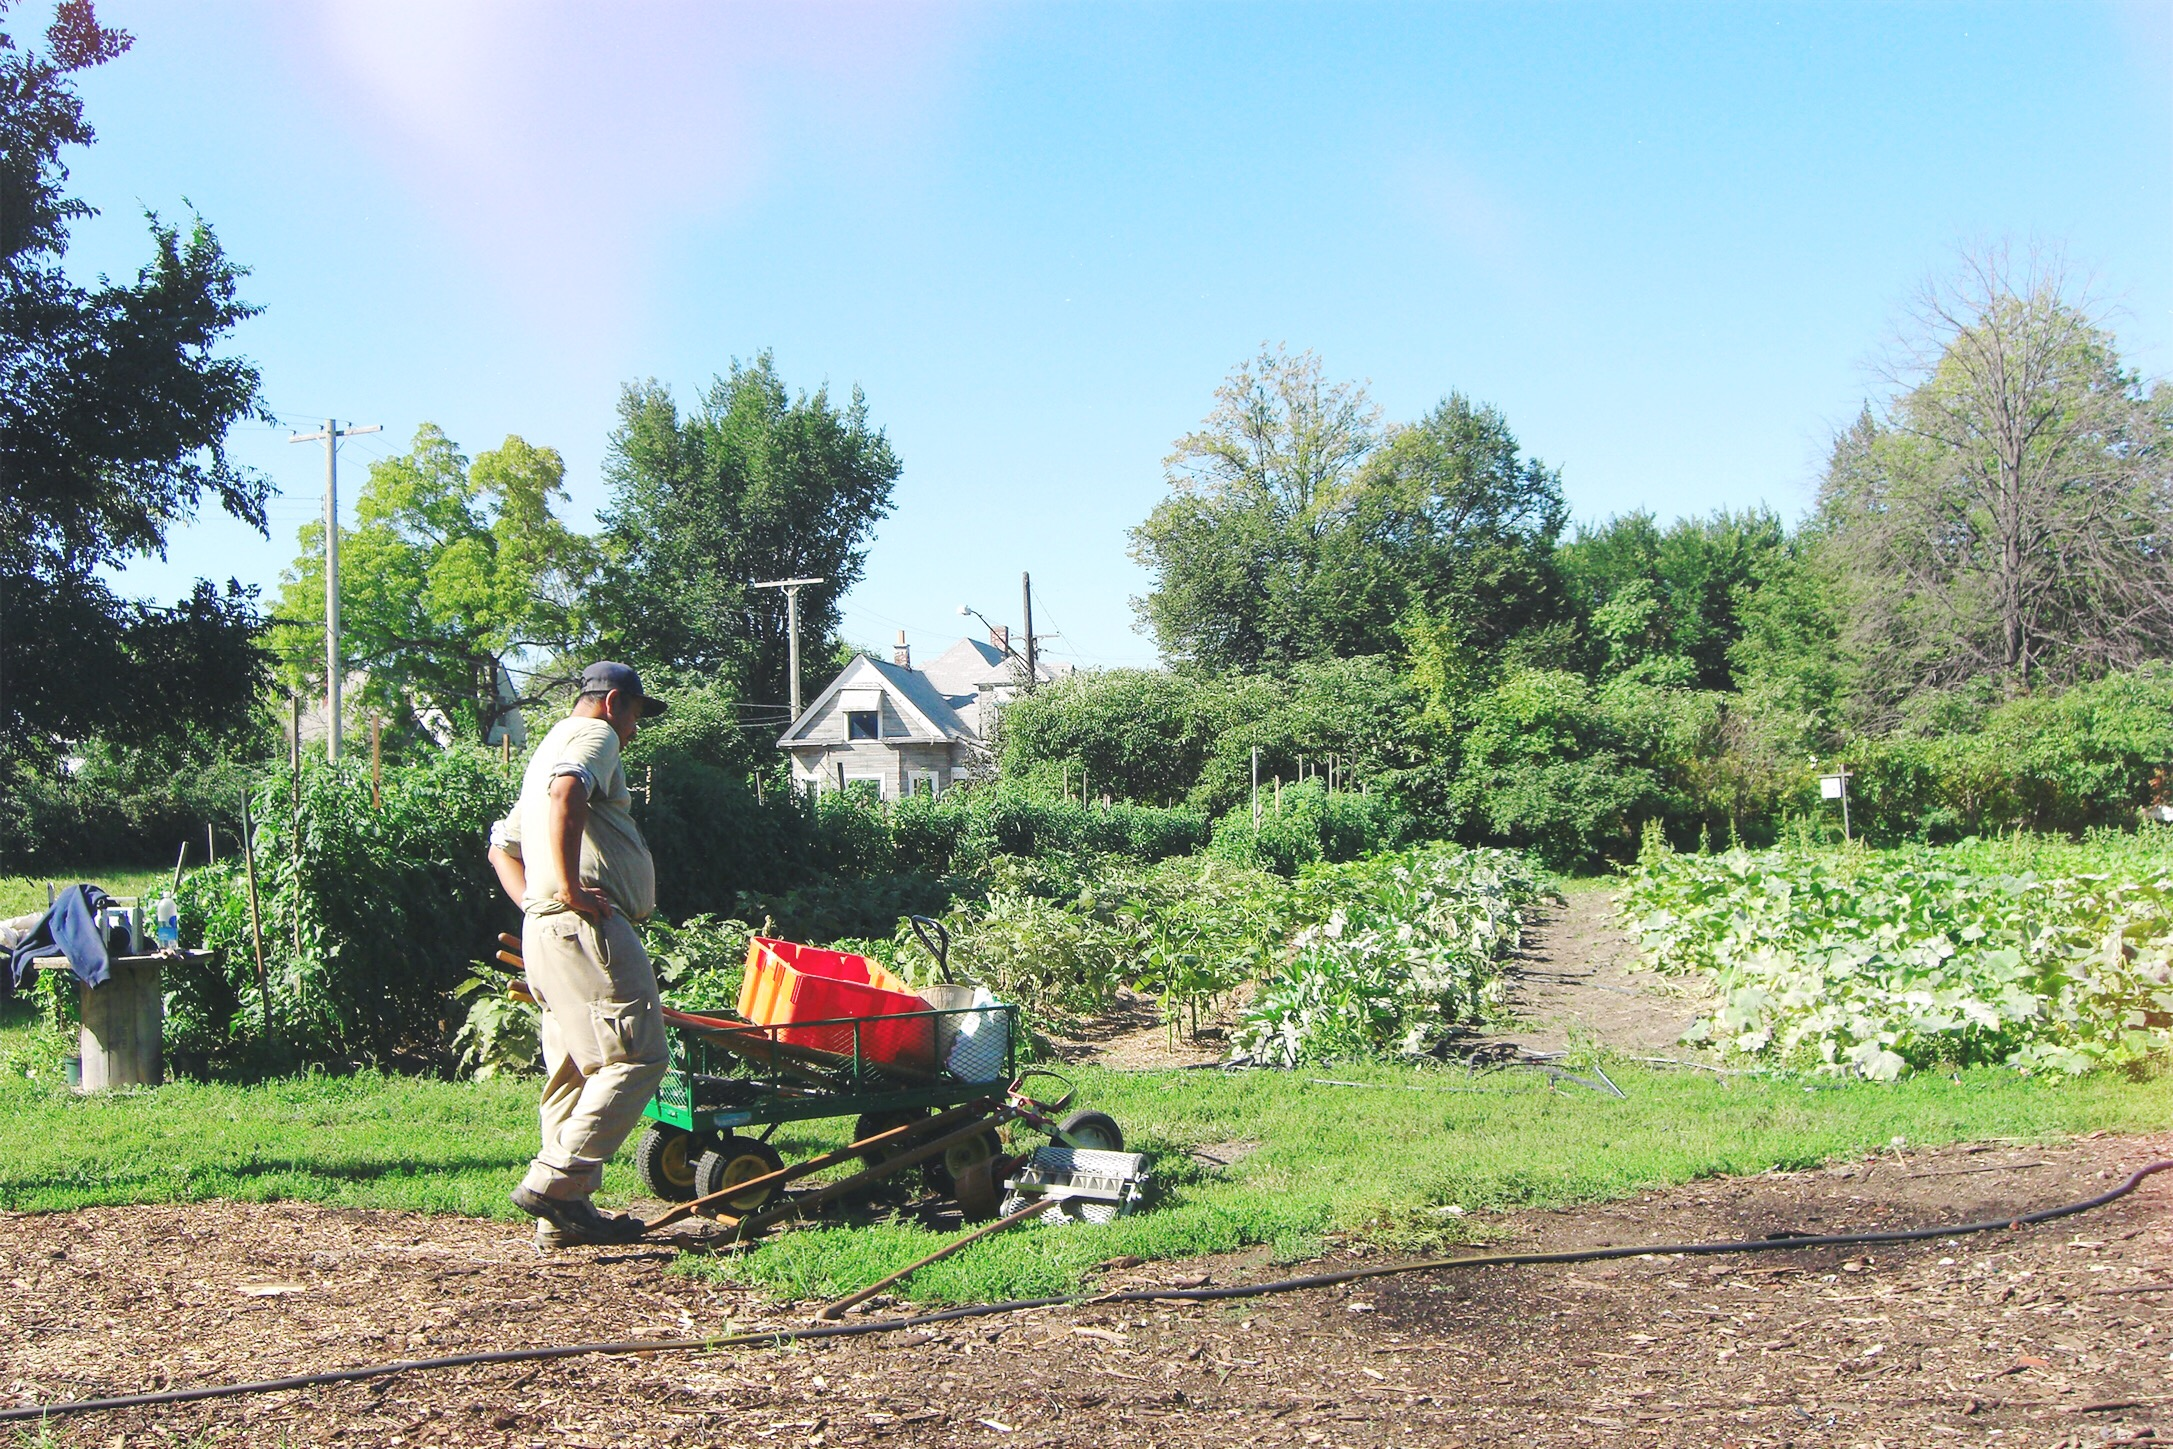 Volunteers tending the crops at Eartworks Urban Farm in Detroit's sparsely populated East Side.